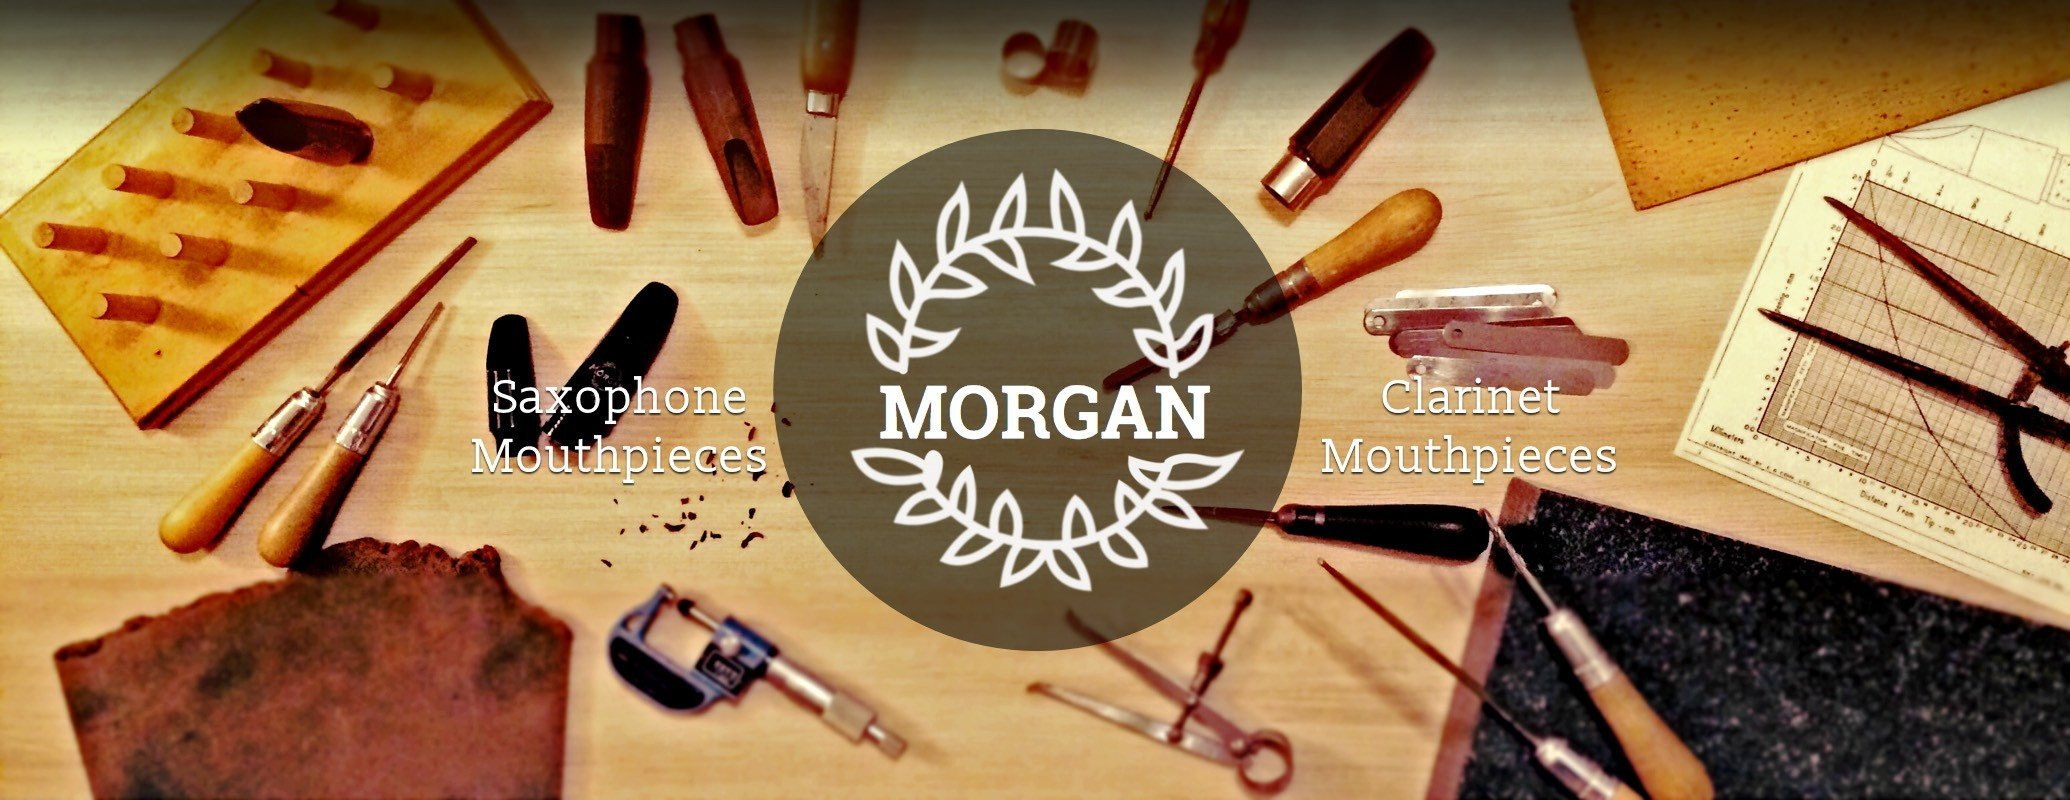 Morgan Mouthpiece Company